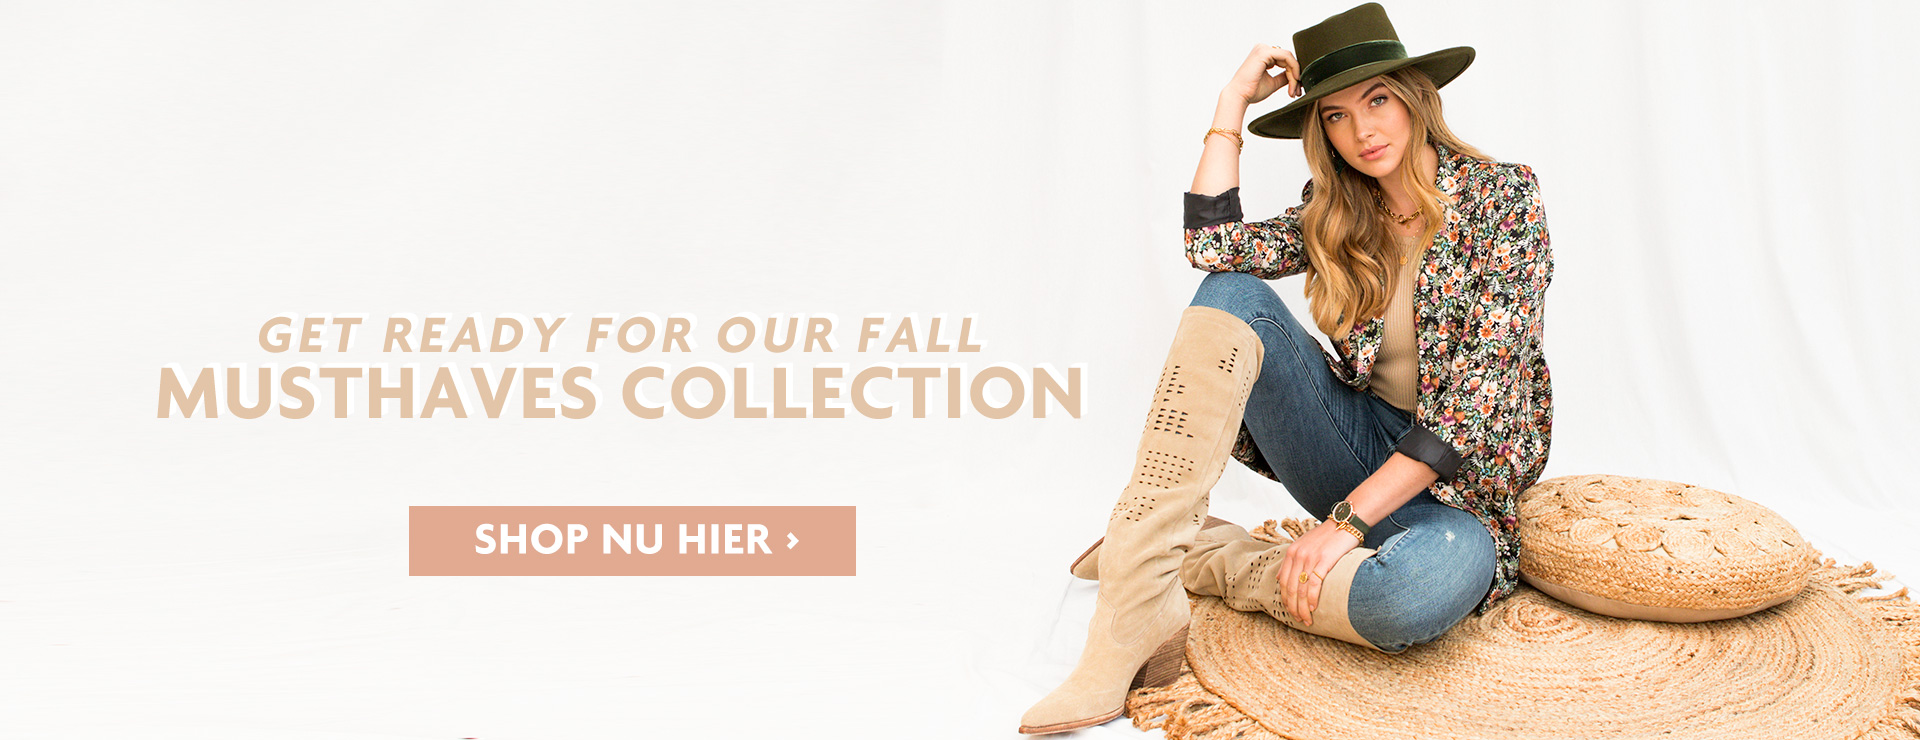 Fall-Musthaves-Collection